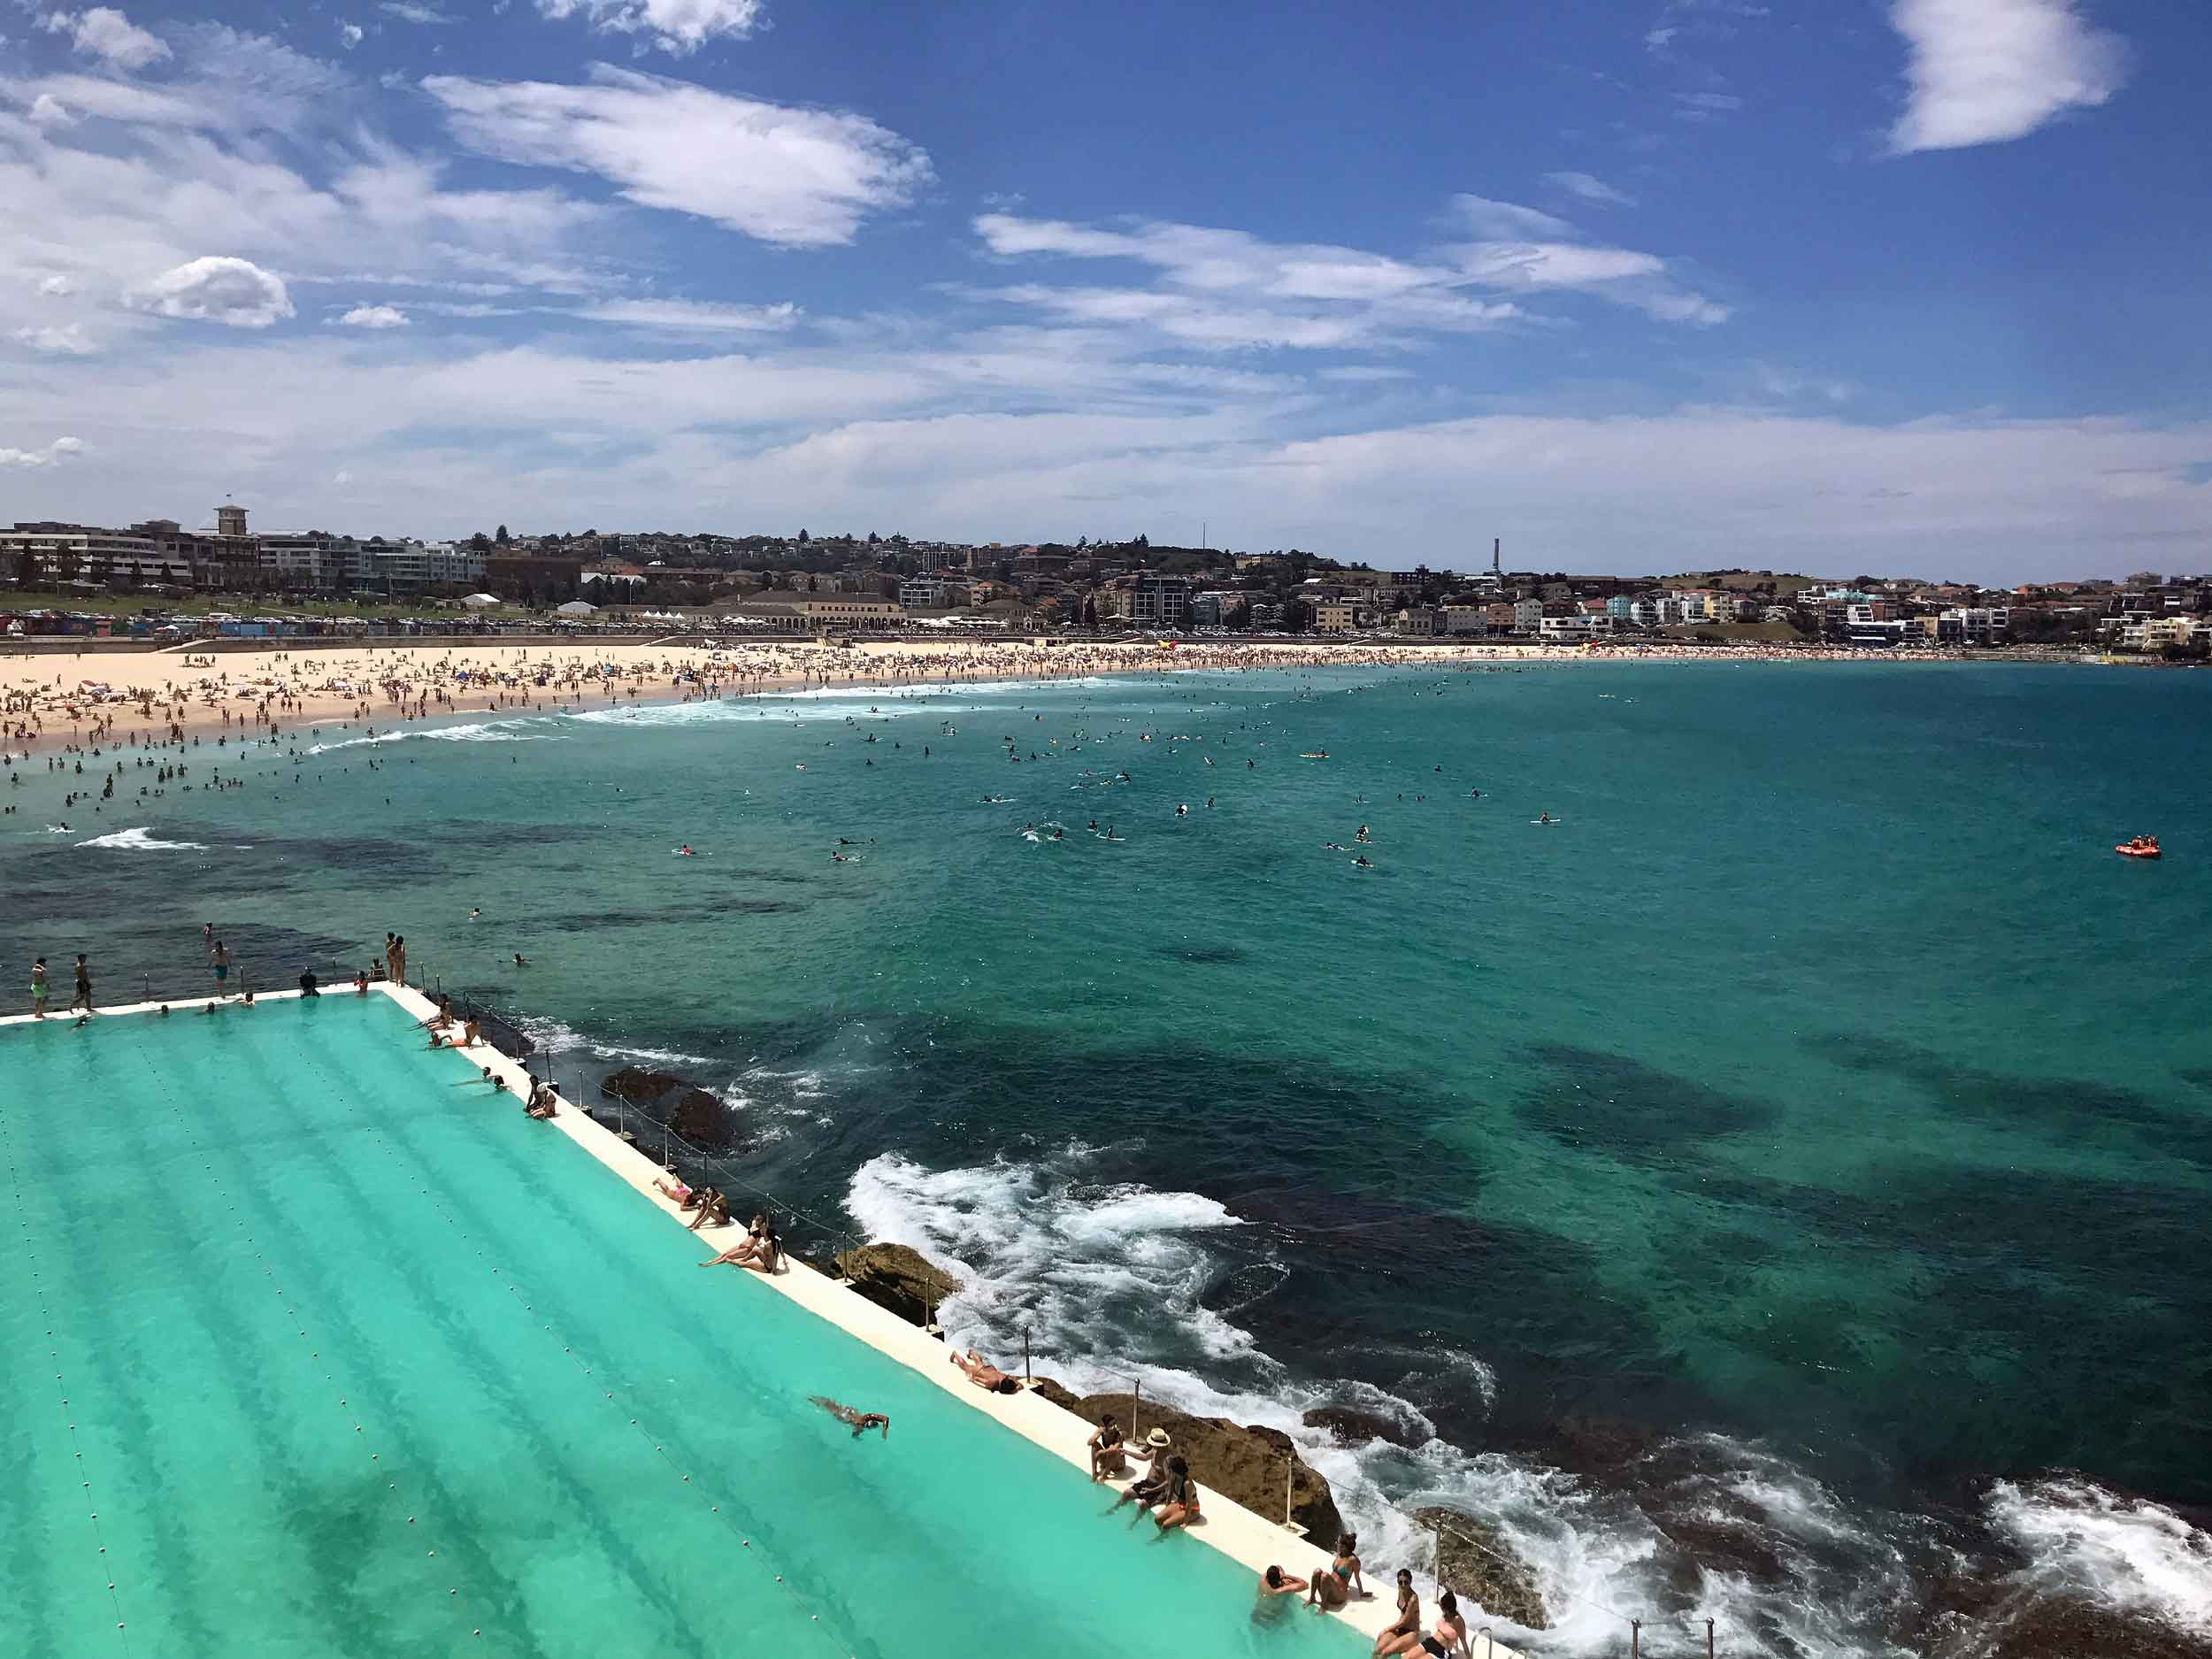 Taking in lunch and a view of the iconic Iceberg's Pool of Bondi Beach (Feb 5).